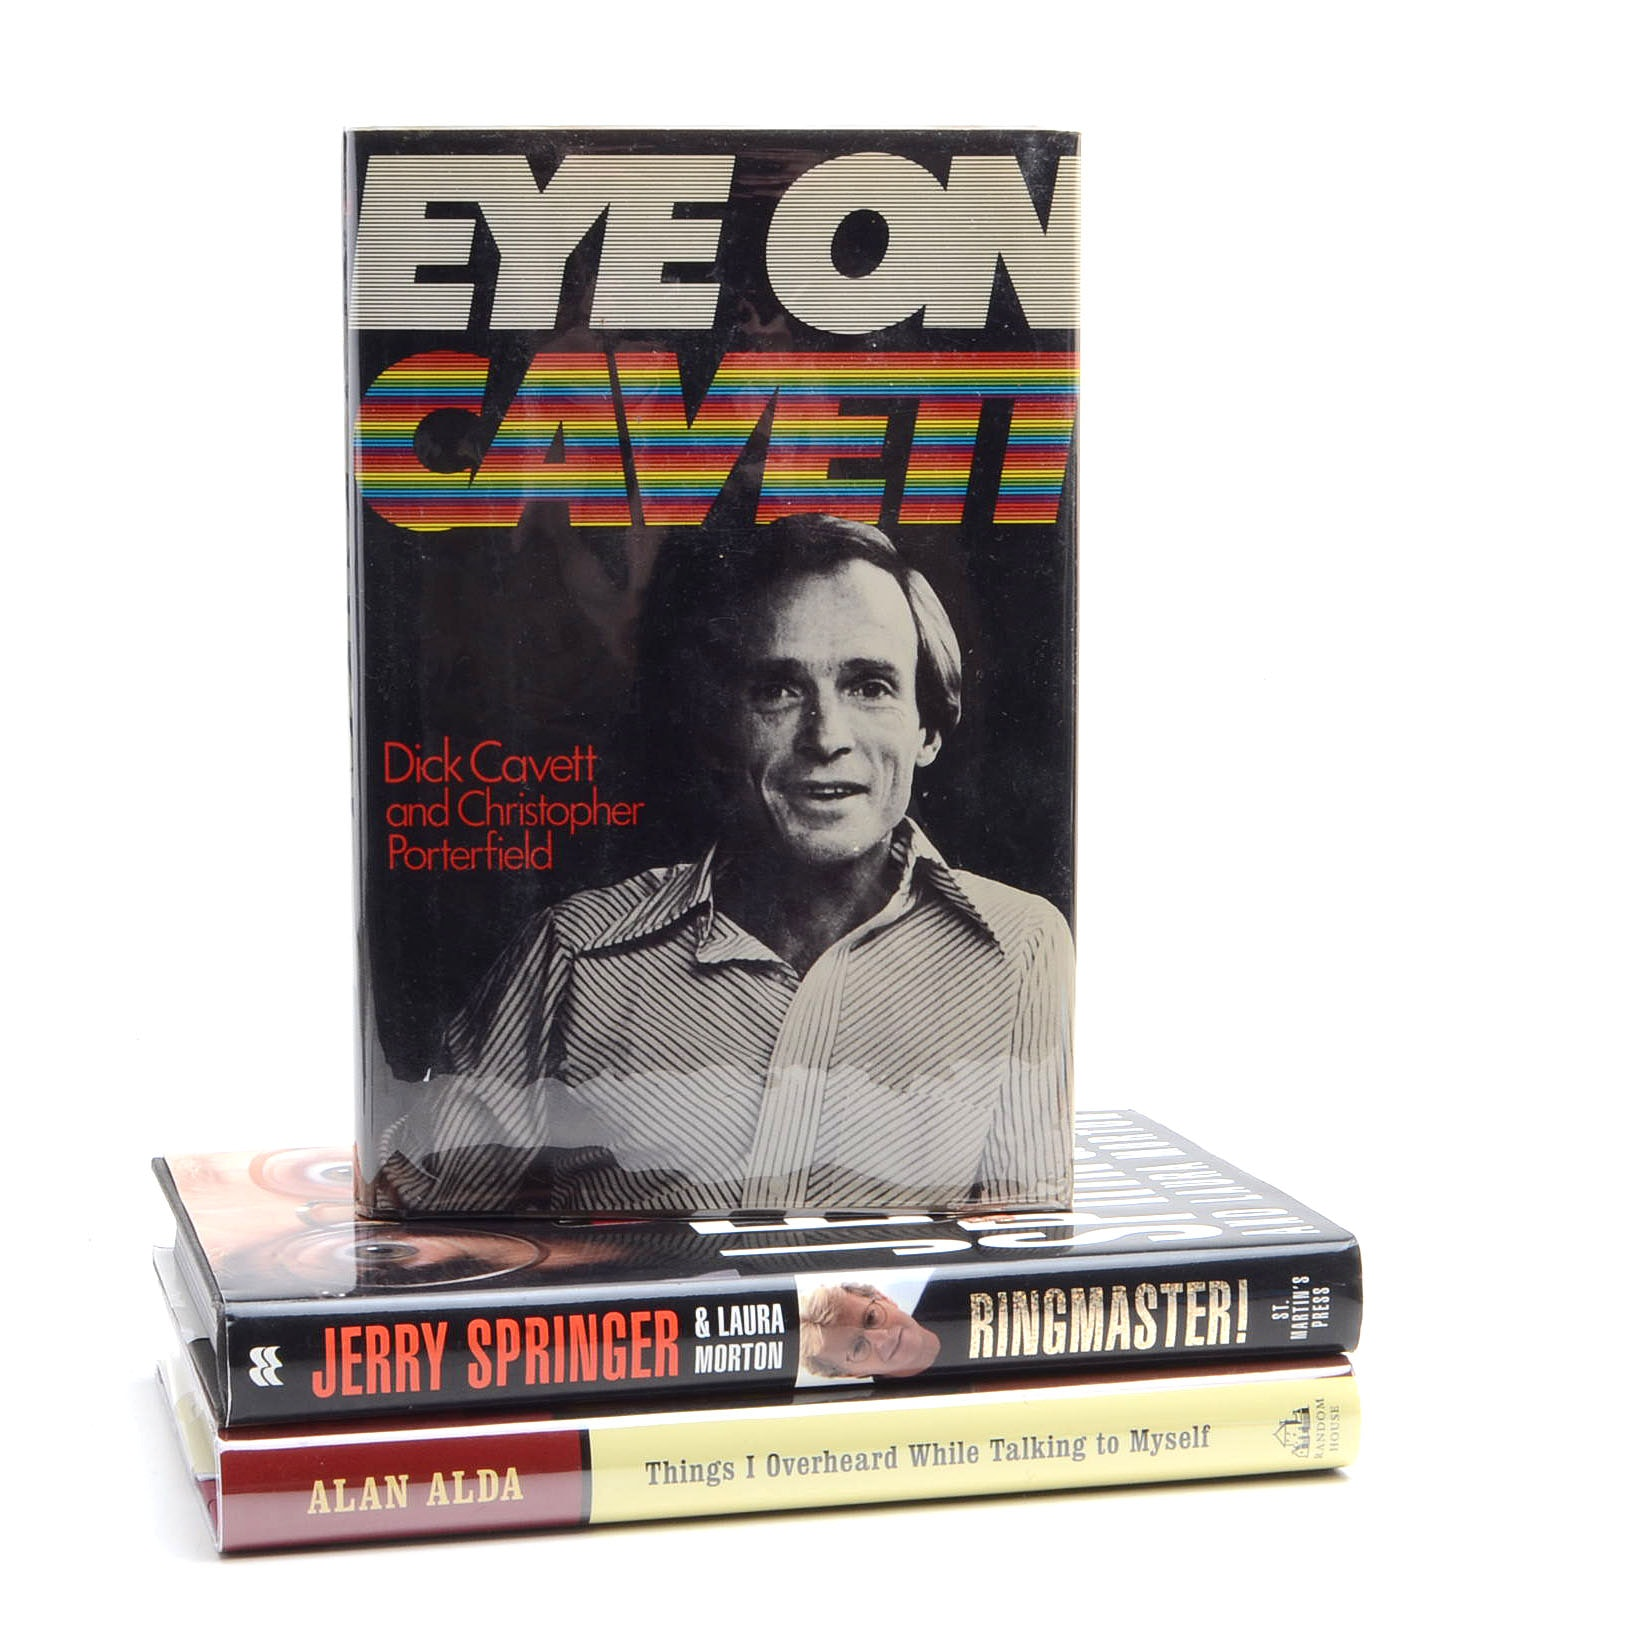 Collection of Celebrity Memoirs including Alan Alda and Jerry Springer